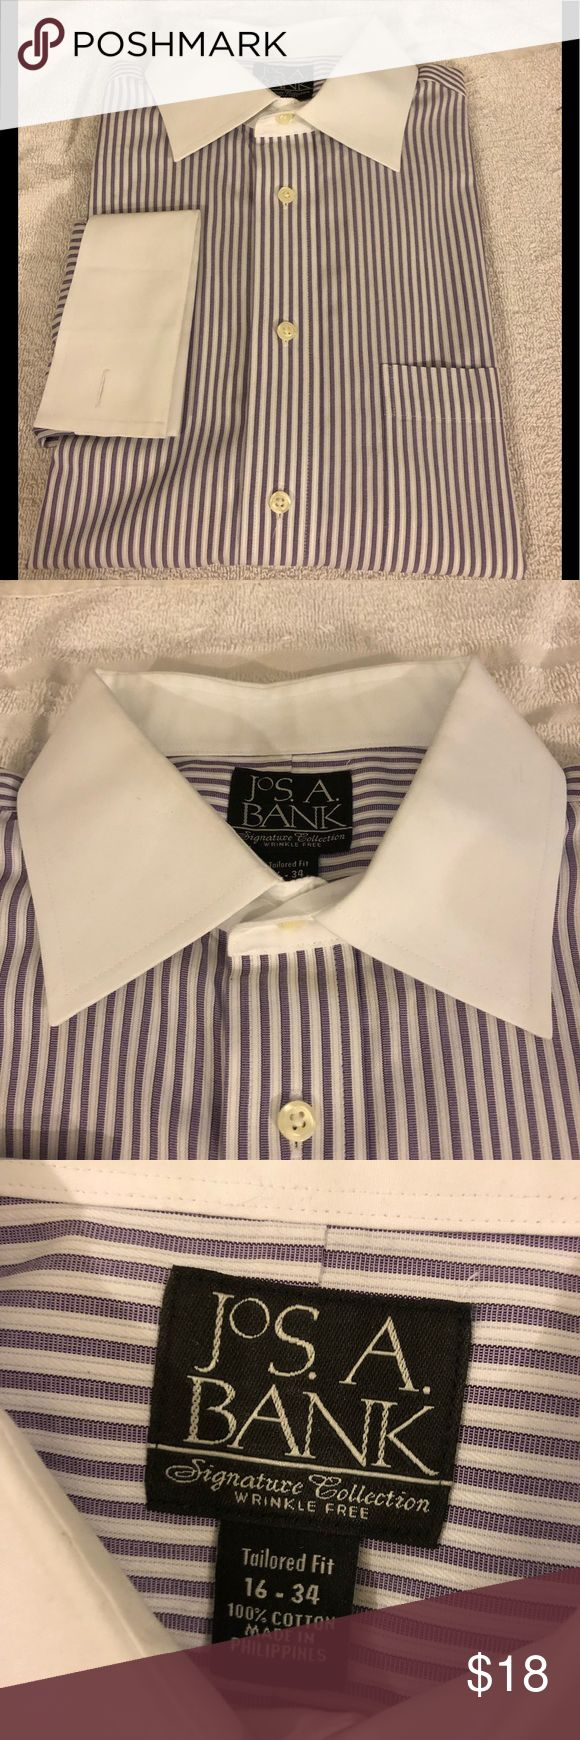 Jos A Bank Purple Stripe French Cuff Shirt 16-34 Jos A Bank Signature Collection Purple and White Stripe White Collar French Cuff Tailored Fit Dress Shirt size 16-34! Great condition!  Please make reasonable offers and bundle! Ask questions :) Jos. A. Bank Shirts Dress Shirts